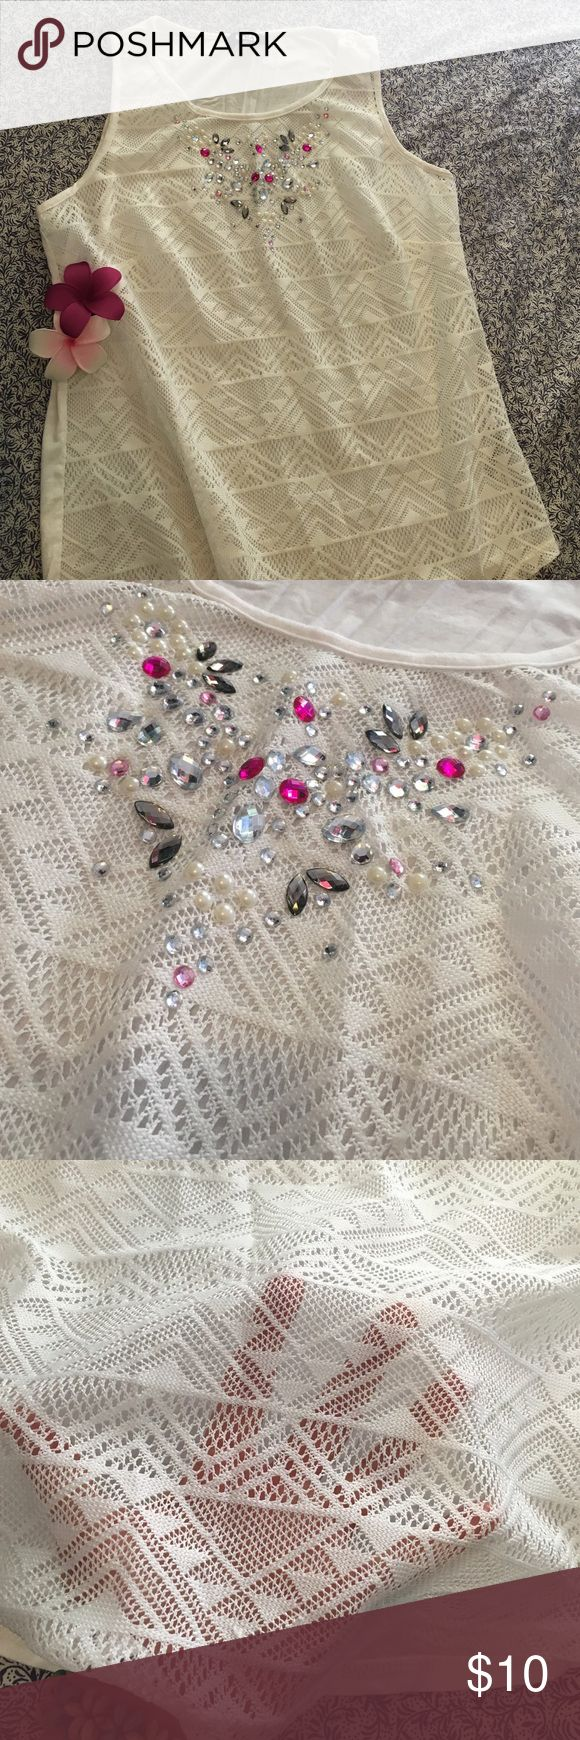 🌸 sparkly detail top 🌸 White vest top with lovely sparkle 'jewels' on the front - excellent condition - worn only once 💜 George Tops